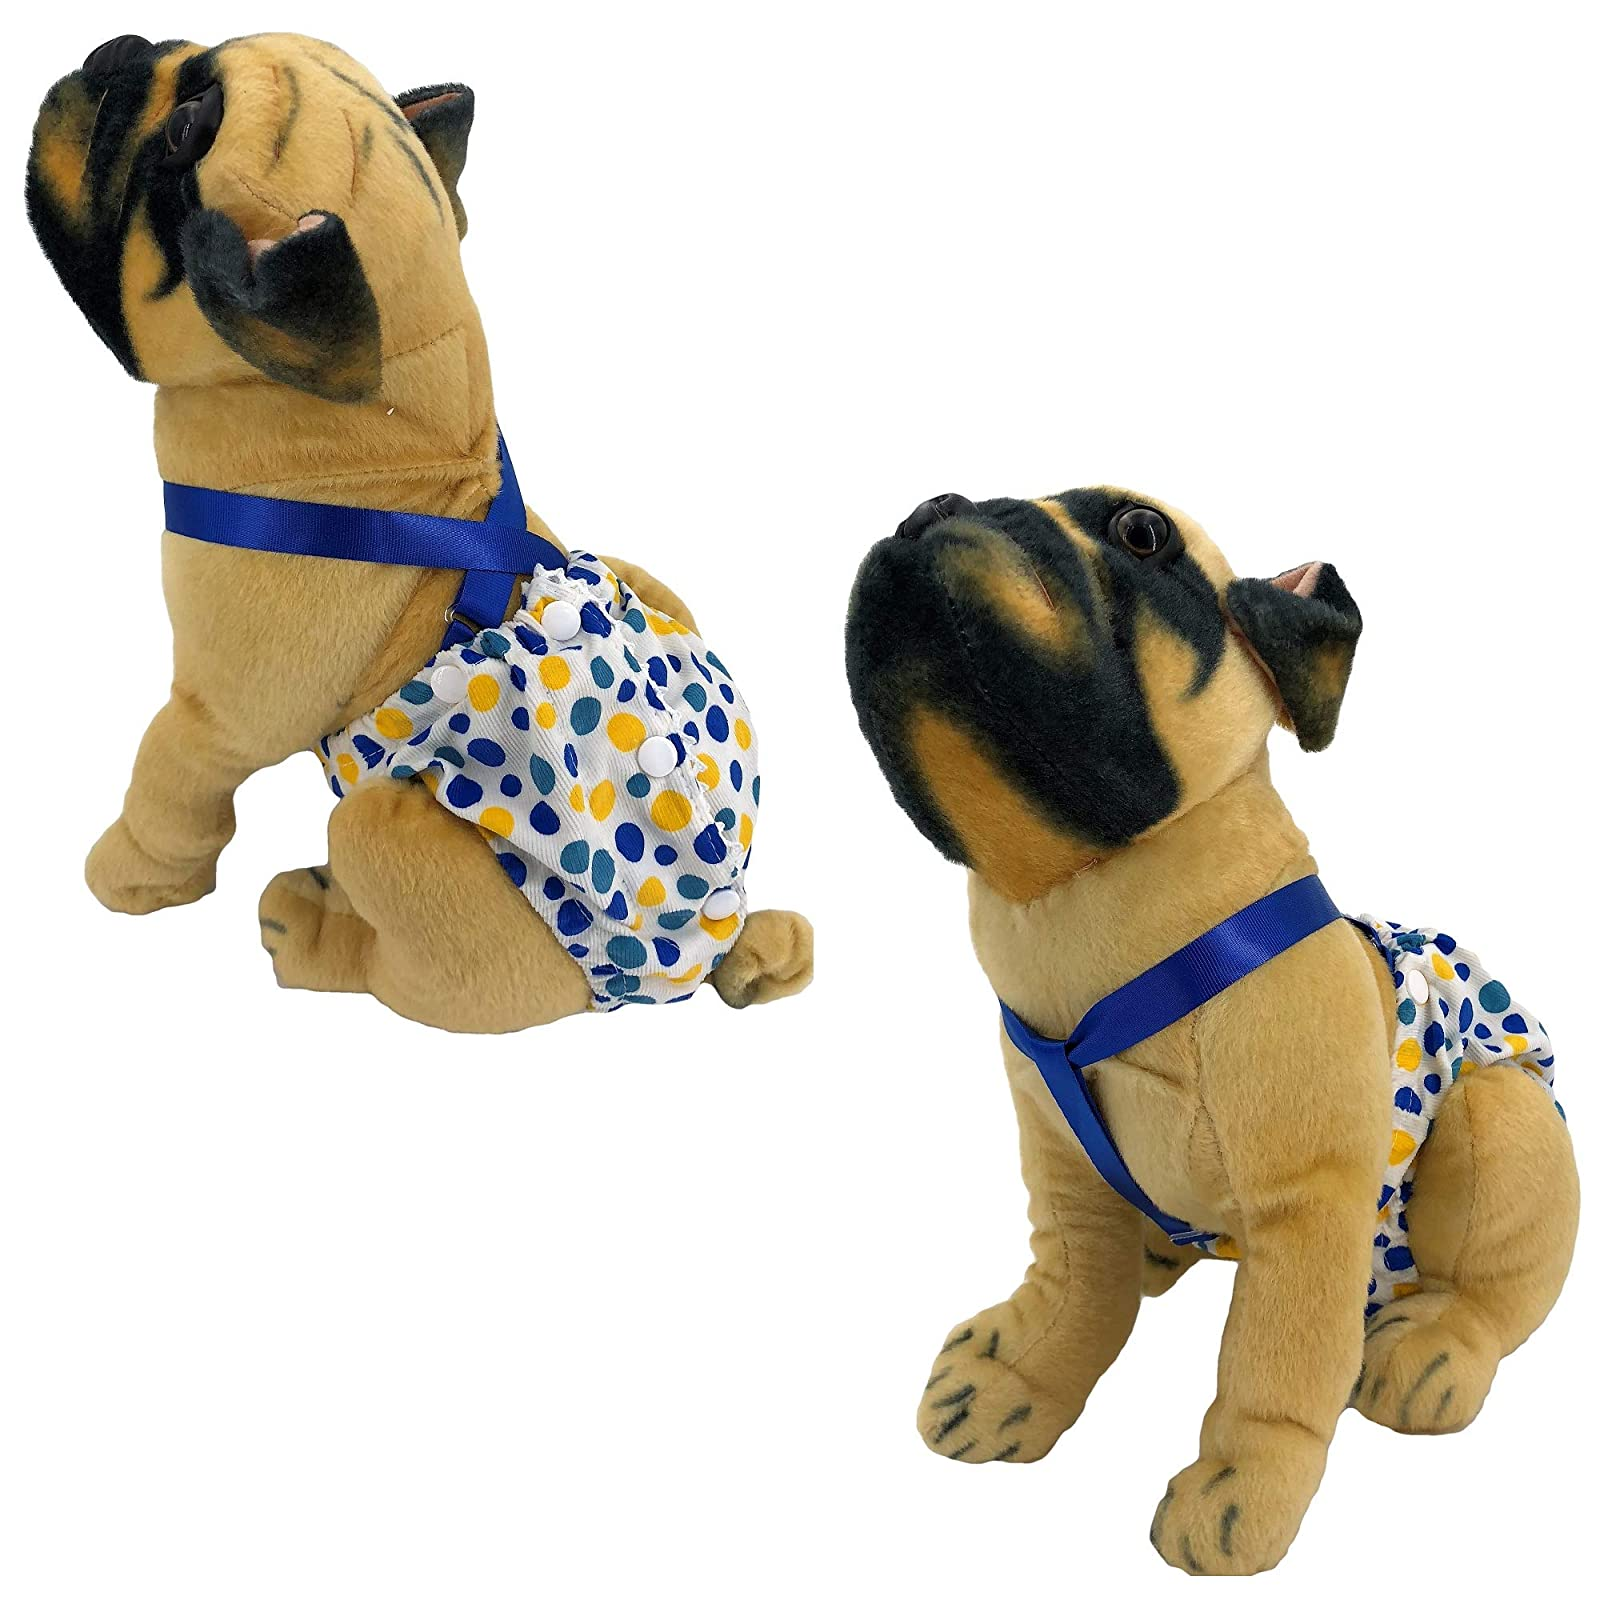 FunnyDogClothes Female Dog Diaper With Suspenders COTTON - 2